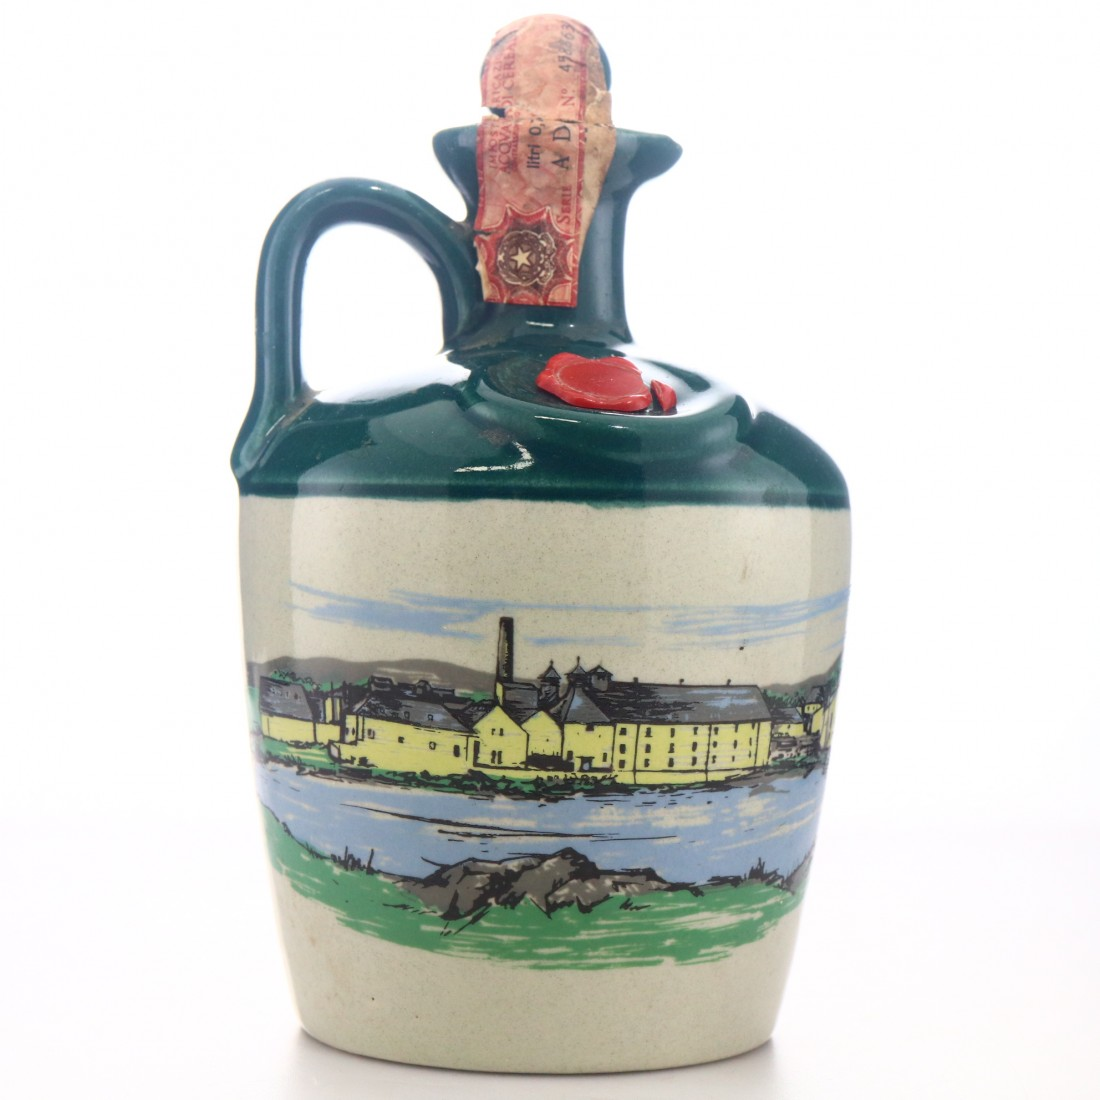 Laphroaig 12 Year Old Decanter 1980s / Bonfanti Import - Collection Only